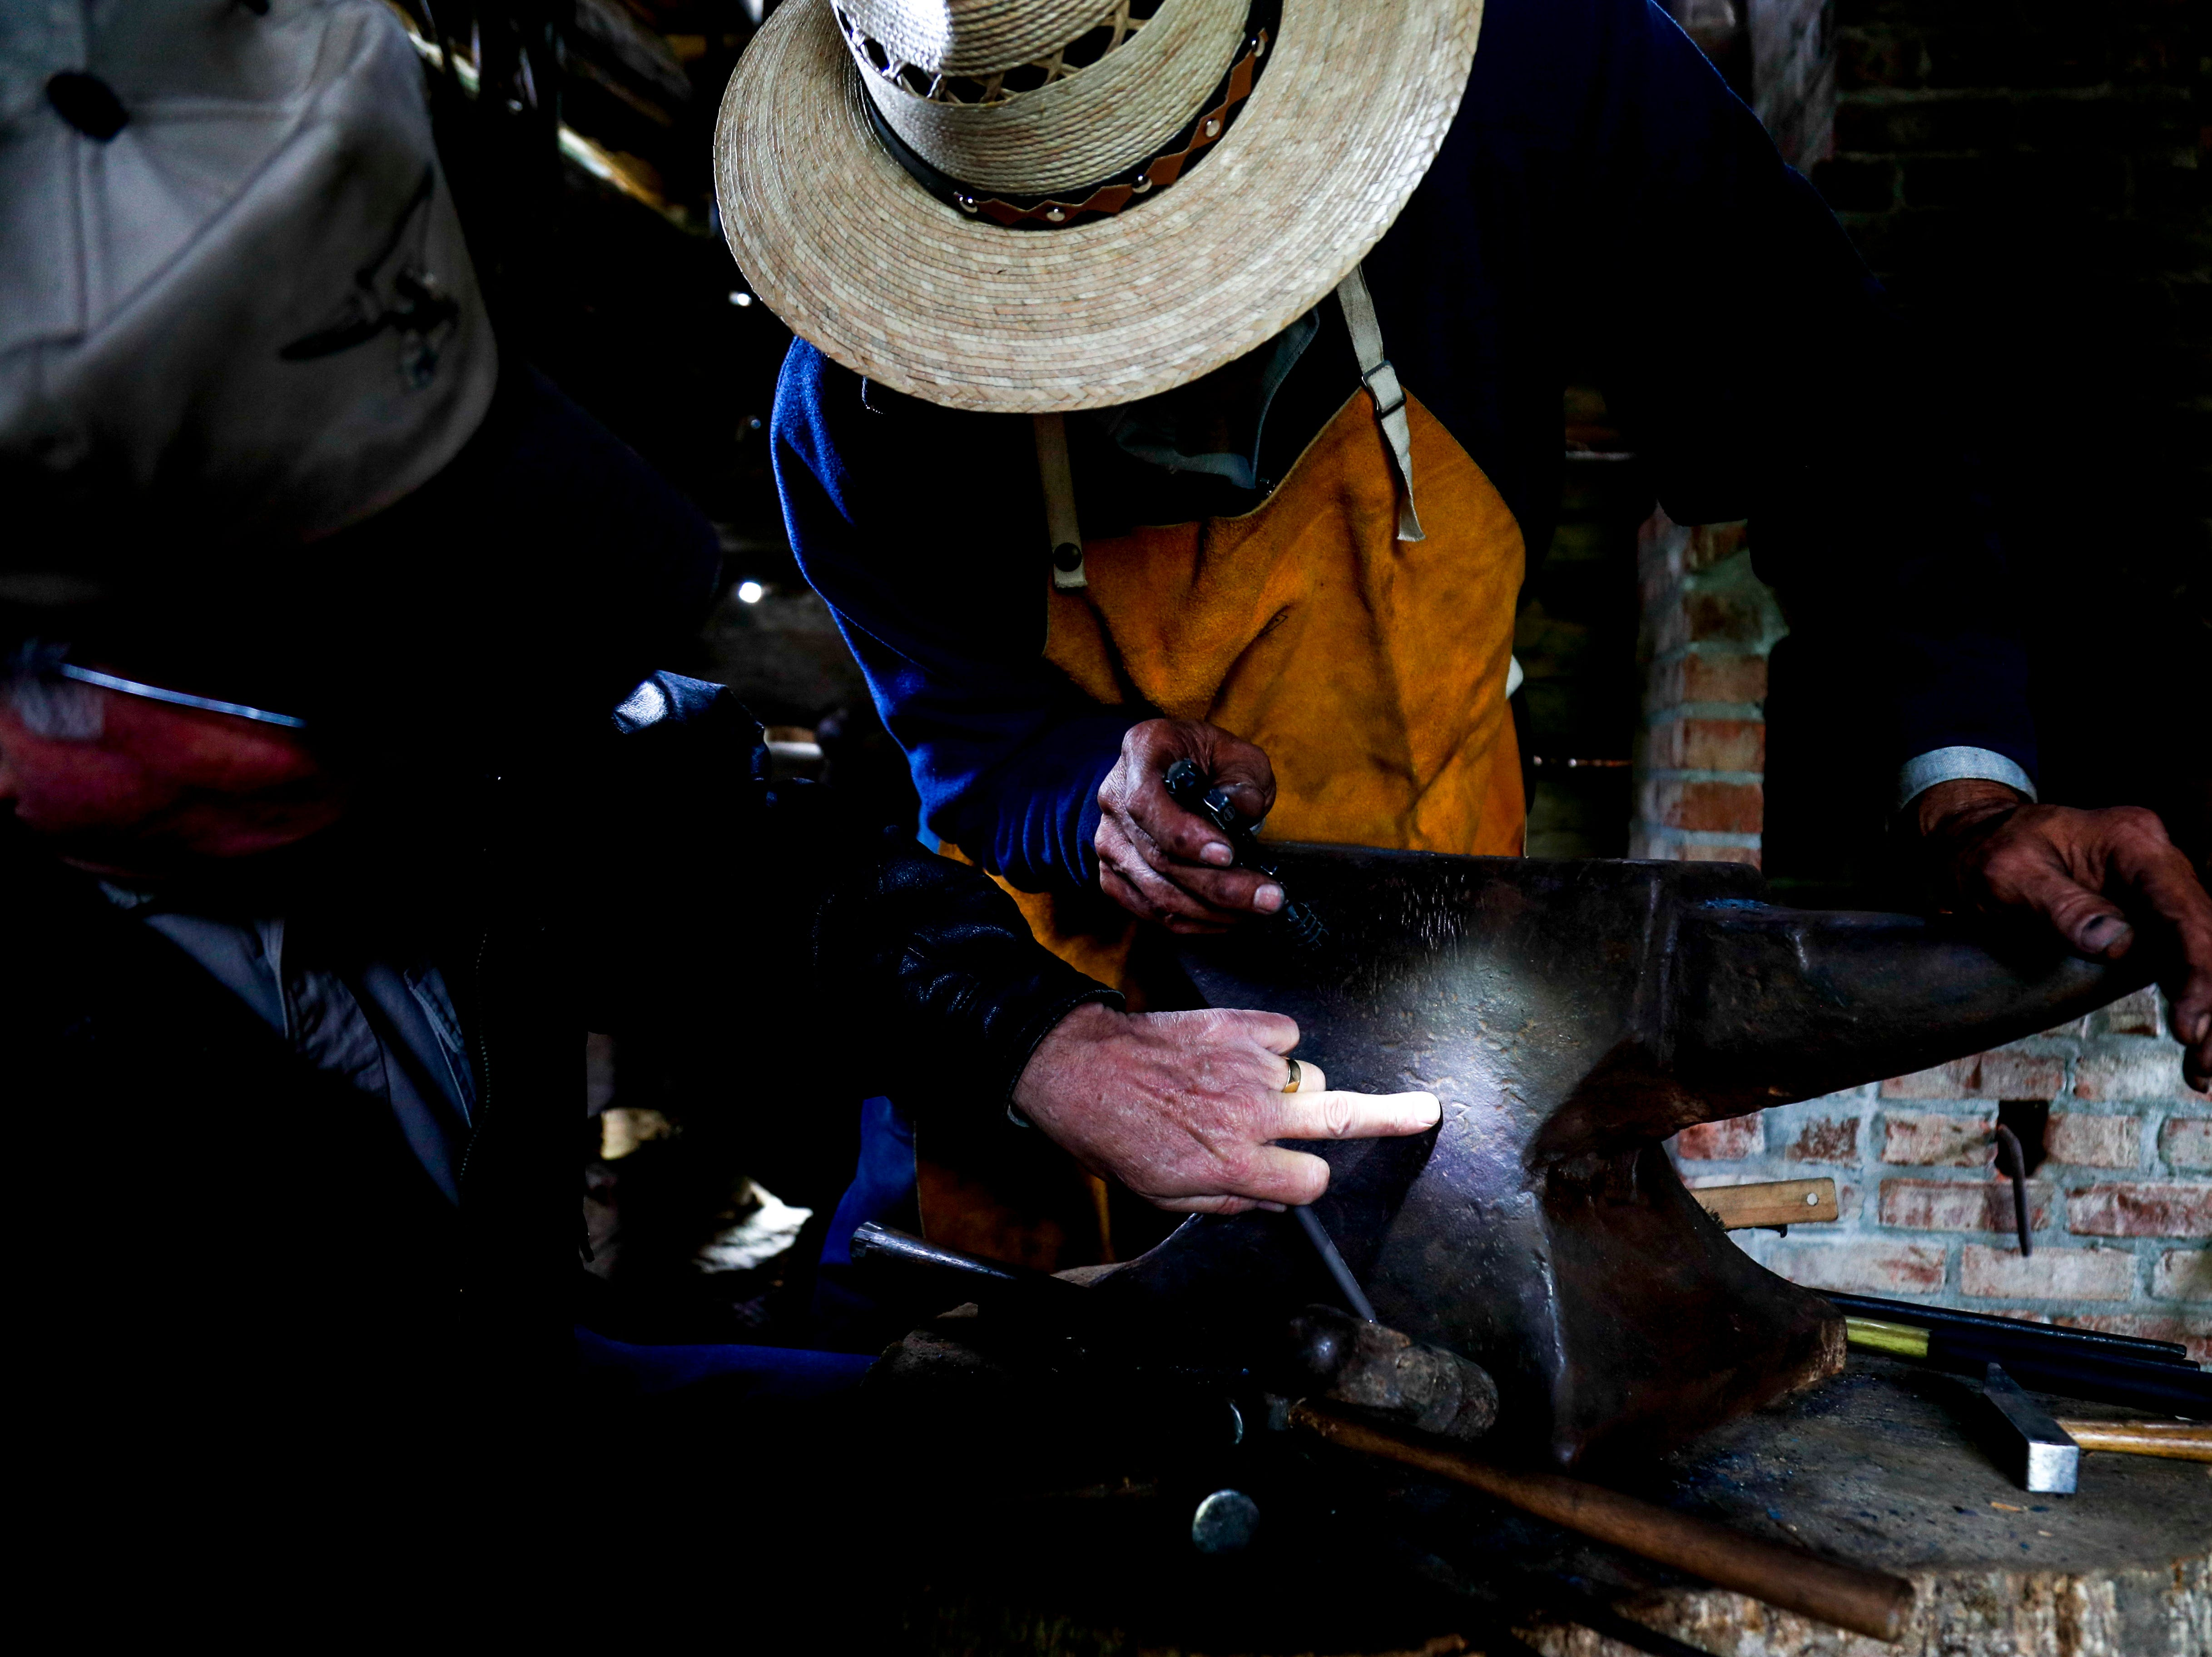 Ramiro Santoyo, center, and Larry Cole, left, examine an anvil inside the blacksmith shop to determine it's age at the annual Easter egg hunts at Historic Collinsville in Clarksville, Tenn., on Saturday, April 20, 2019.